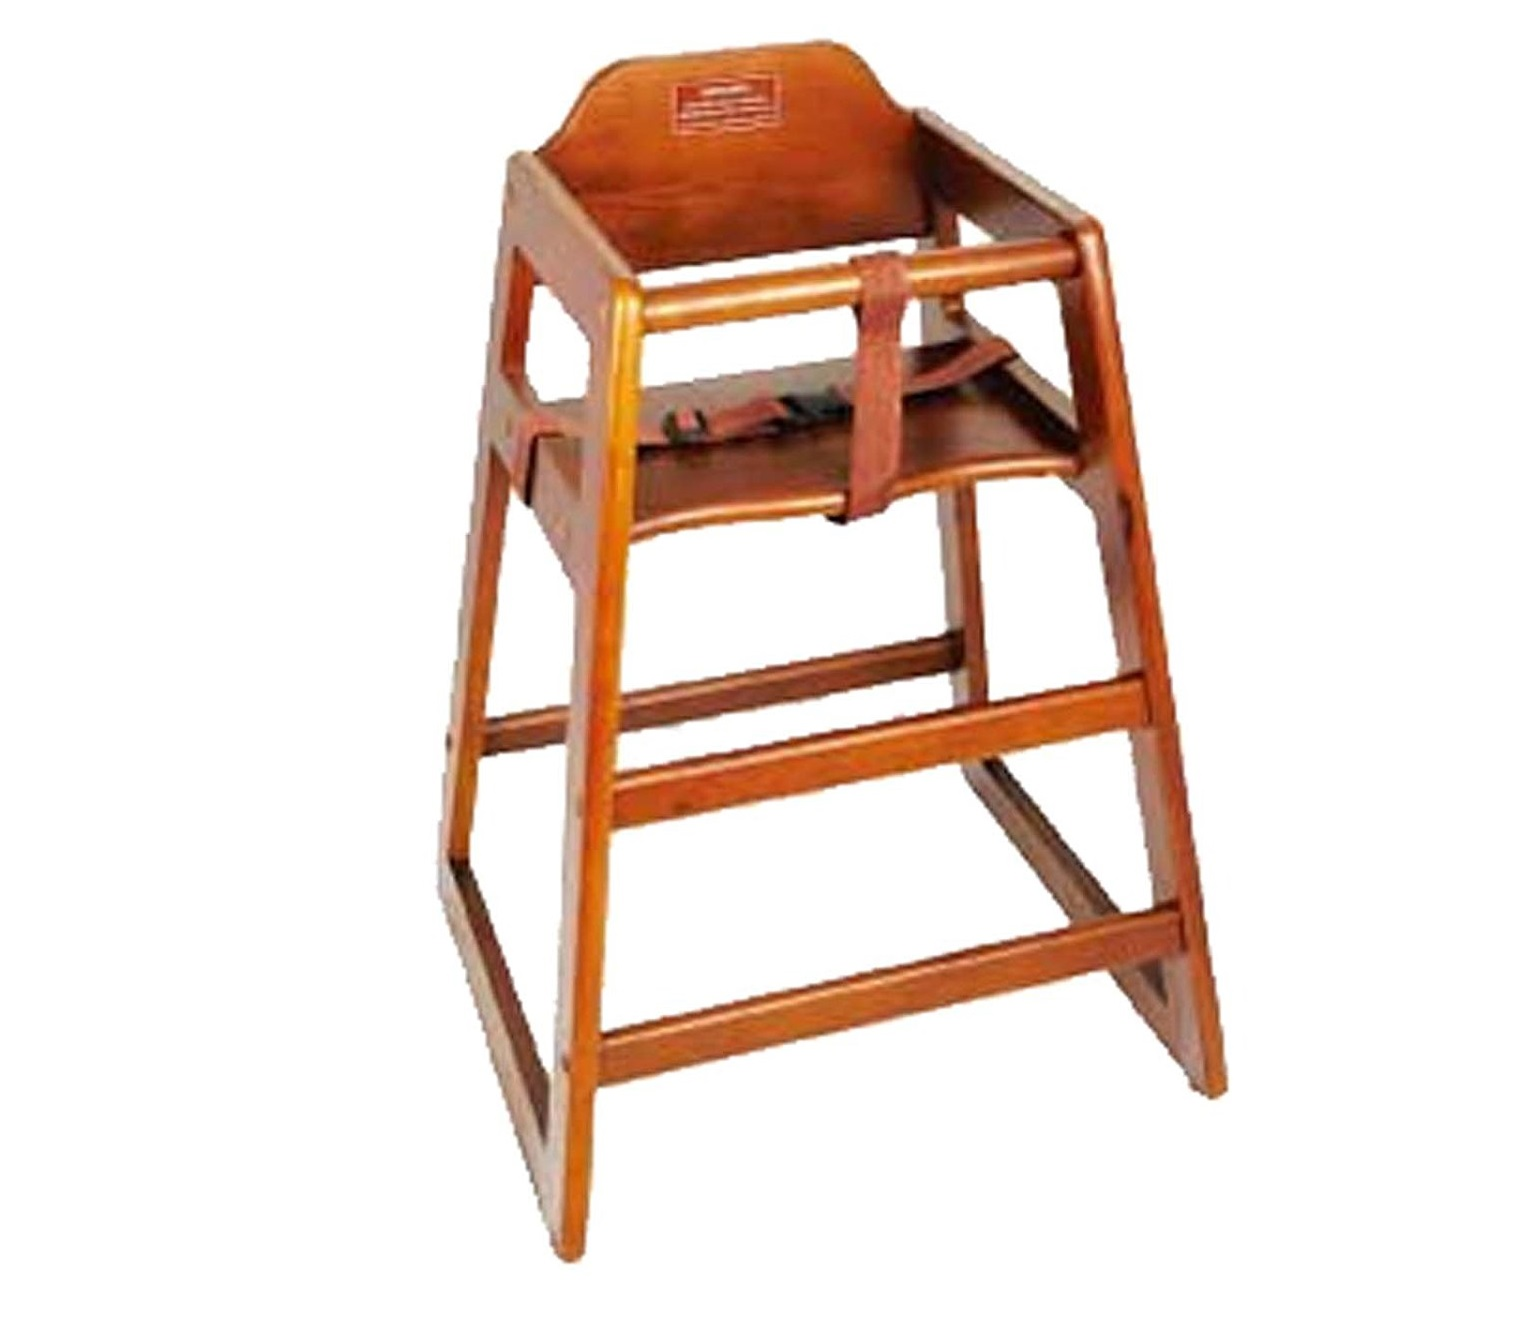 Top 10 Best Wooden High Chairs in 2021